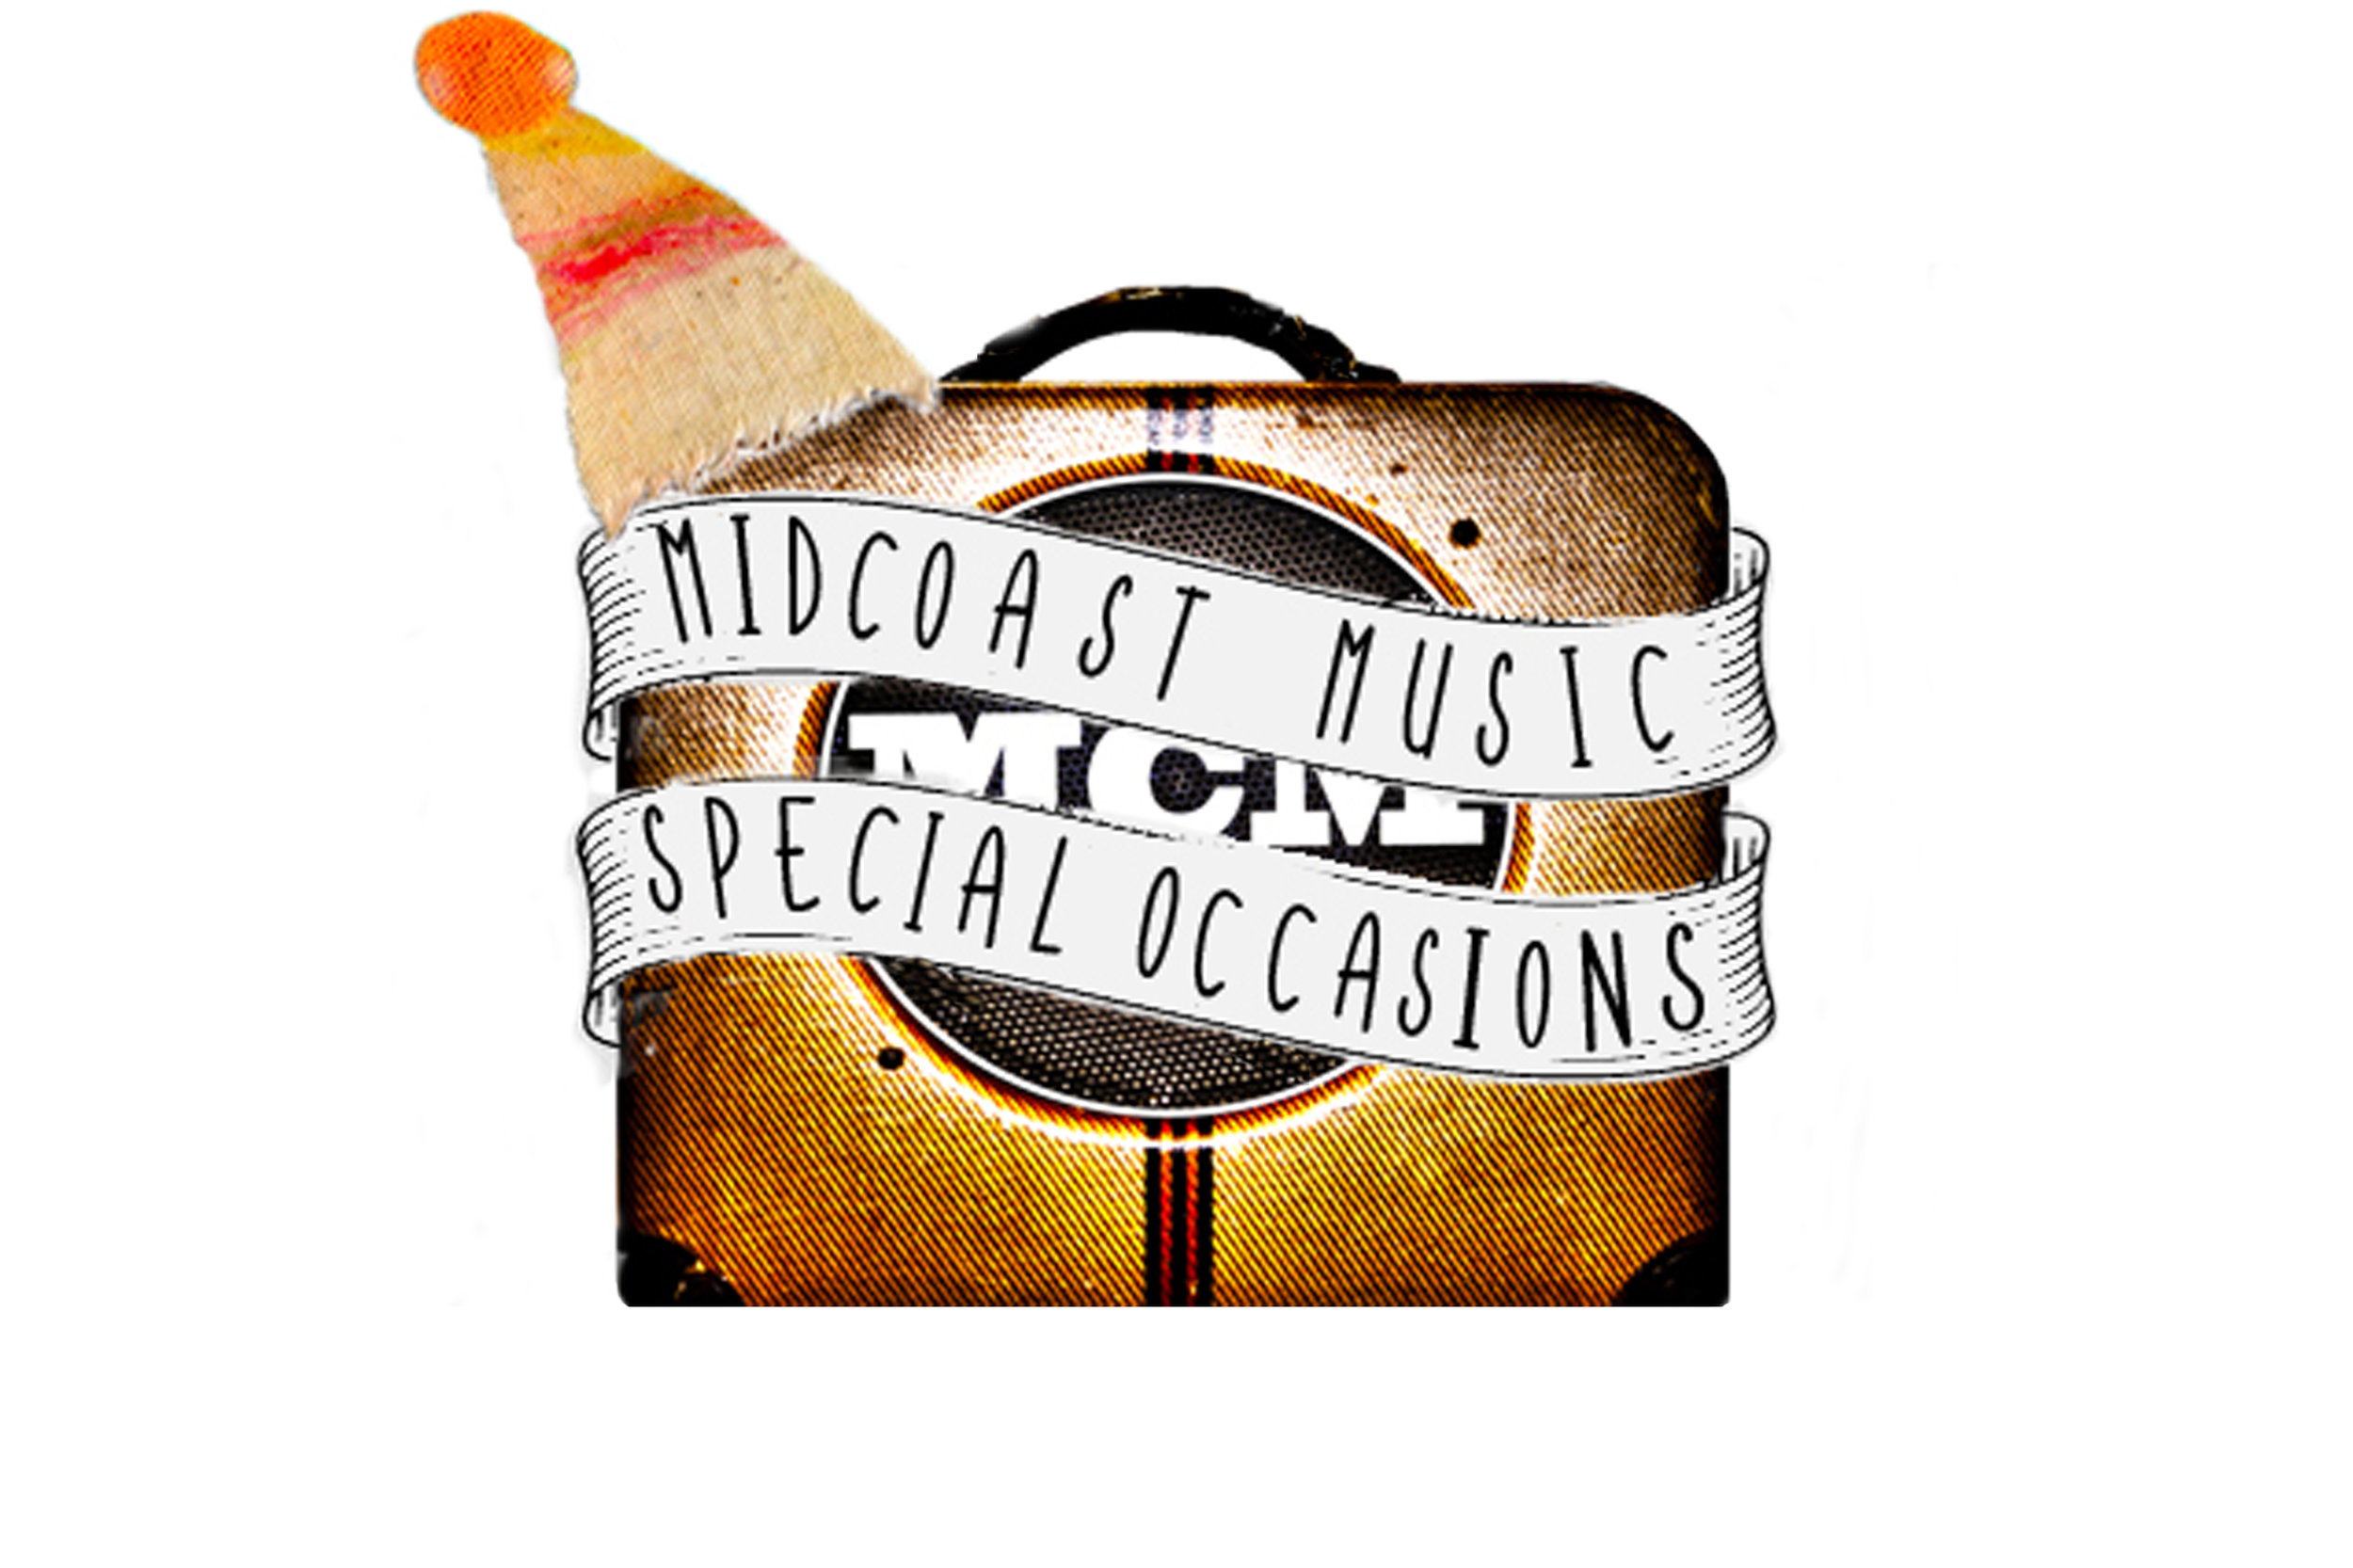 MCMSO Logo Special Occasions.jpg